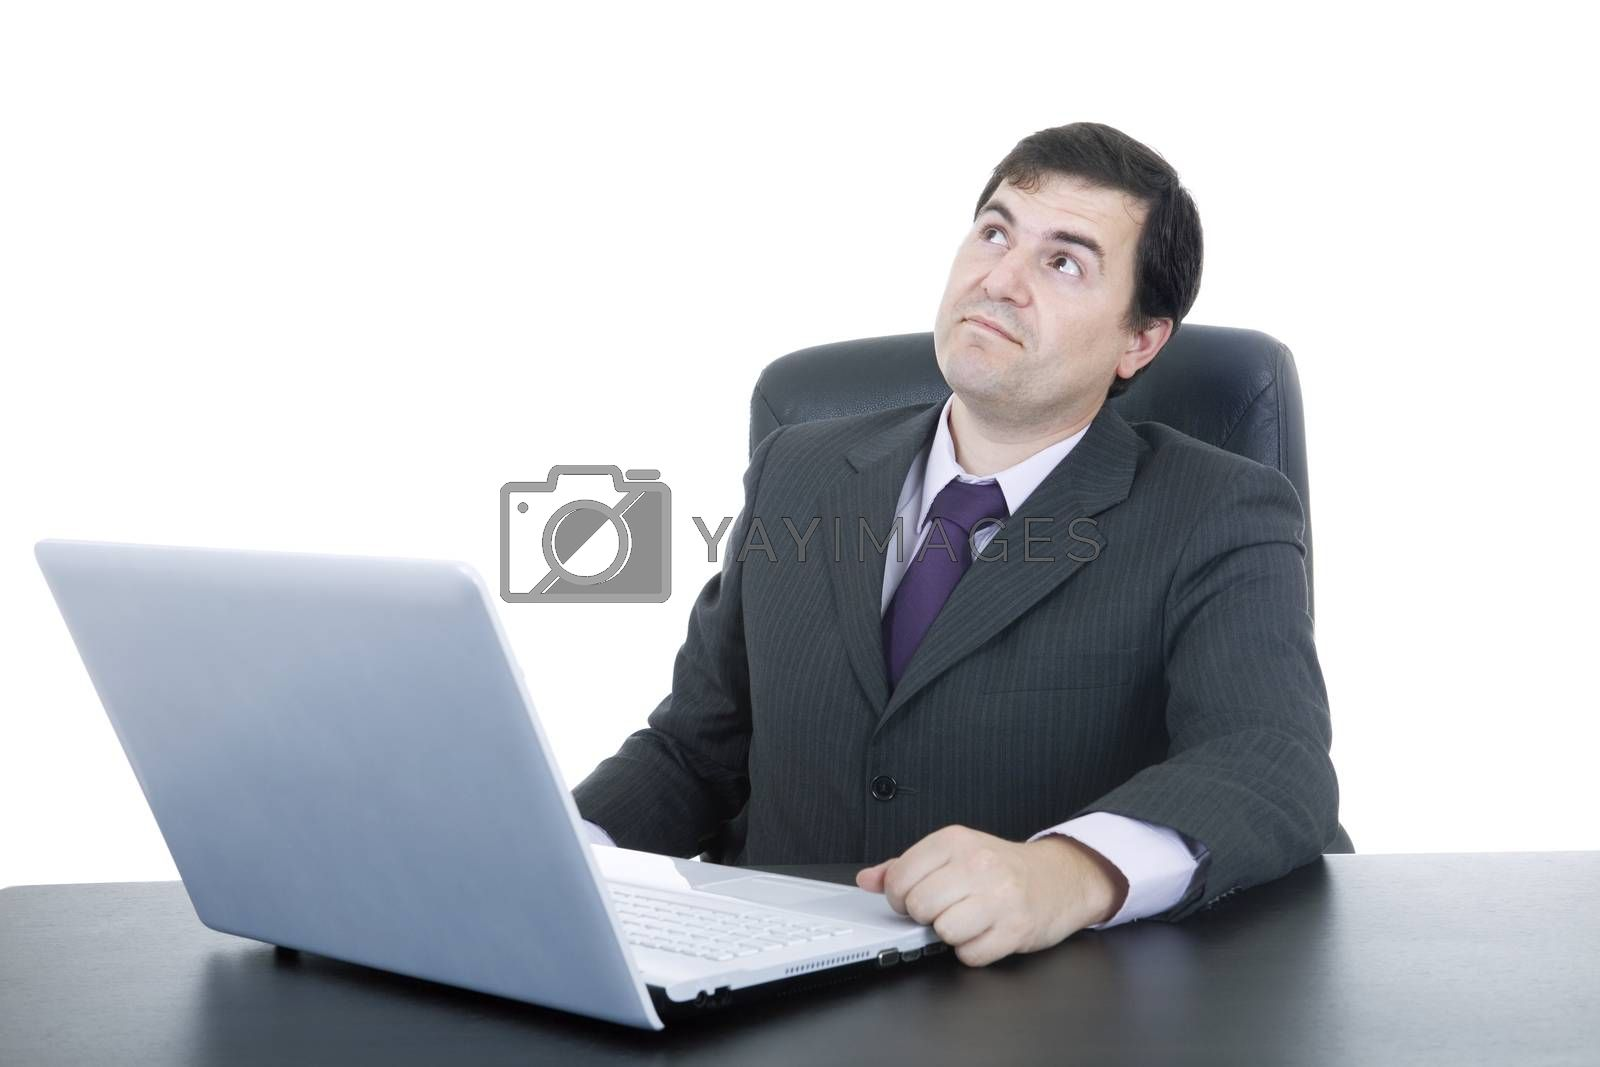 Royalty free image of working by zittto